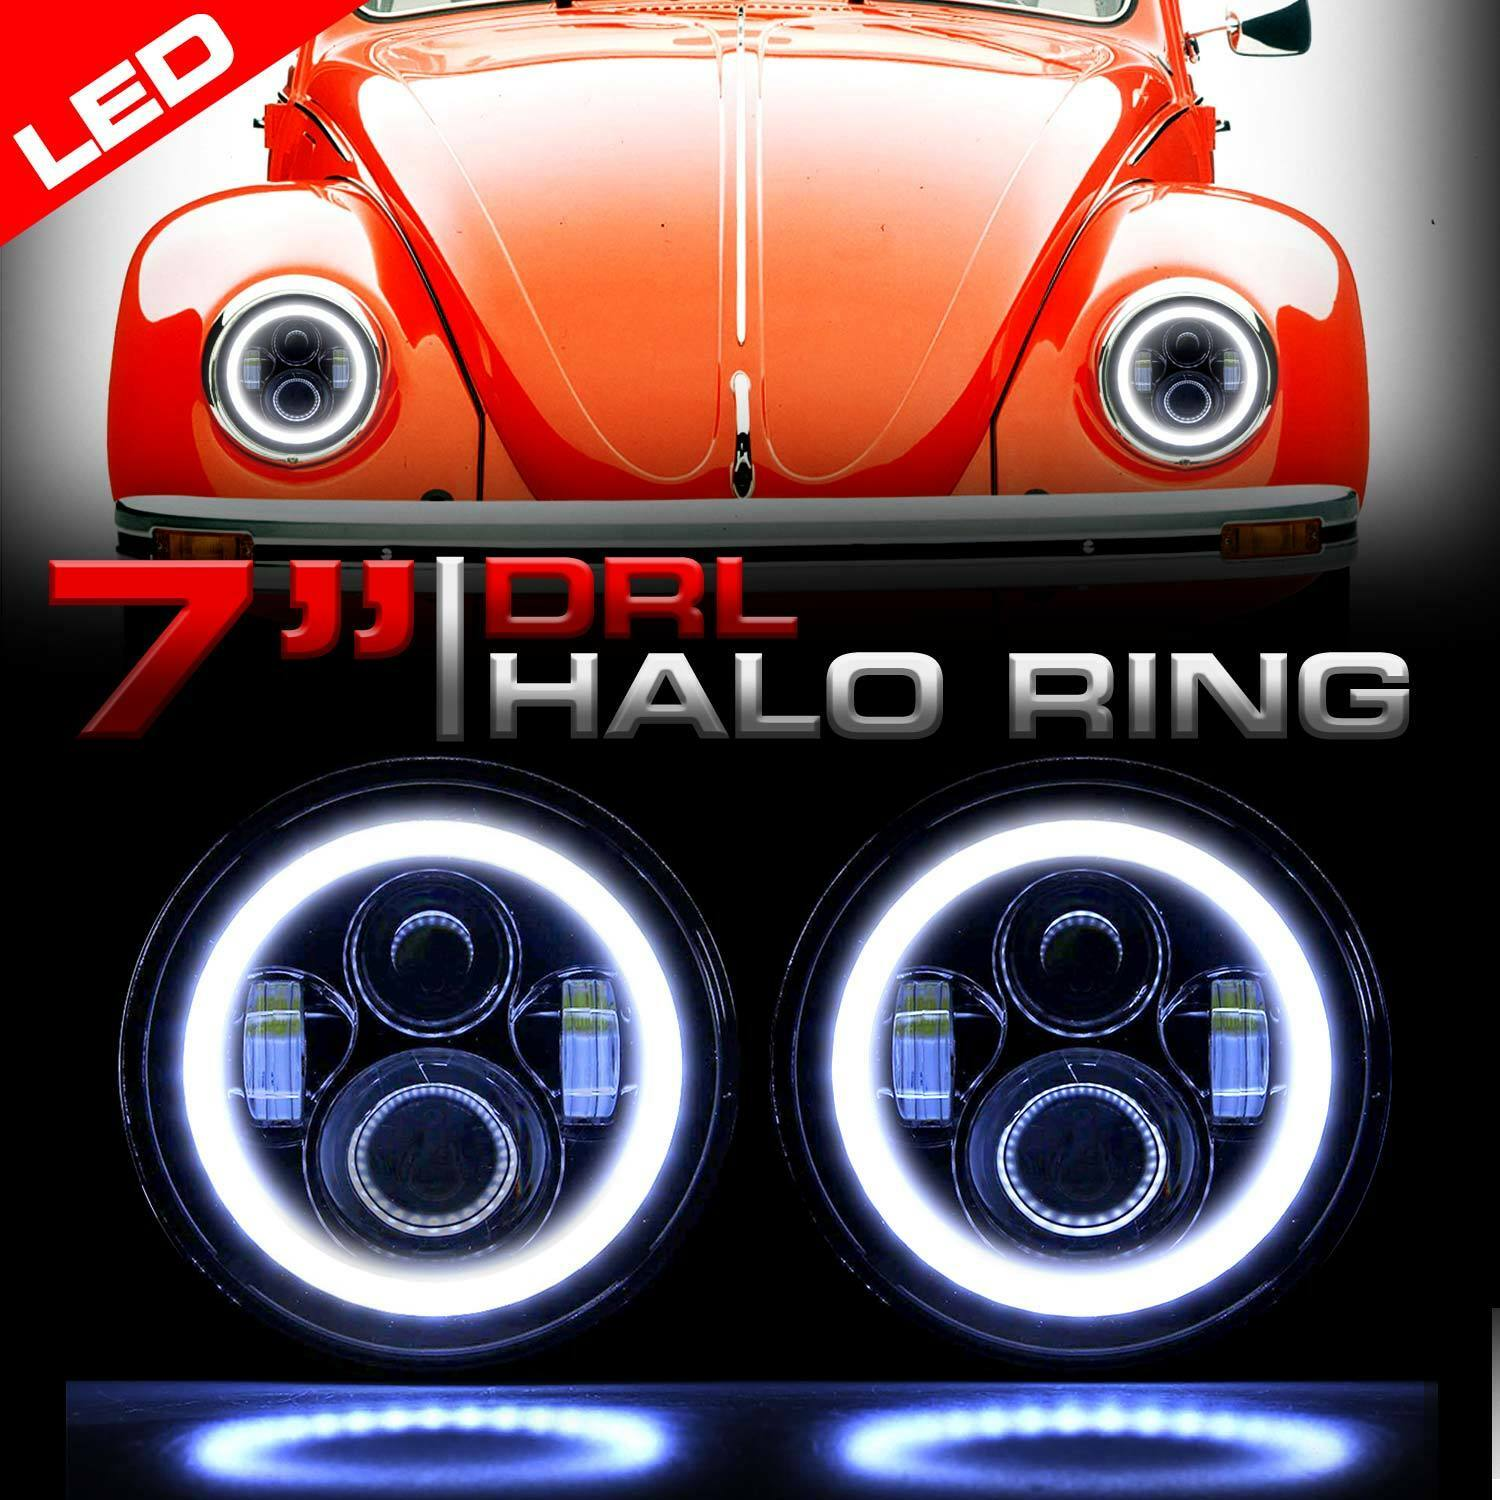 Details About Round Halo Pro Projector Black Headlights Upgrade For Vw Beetle Clic